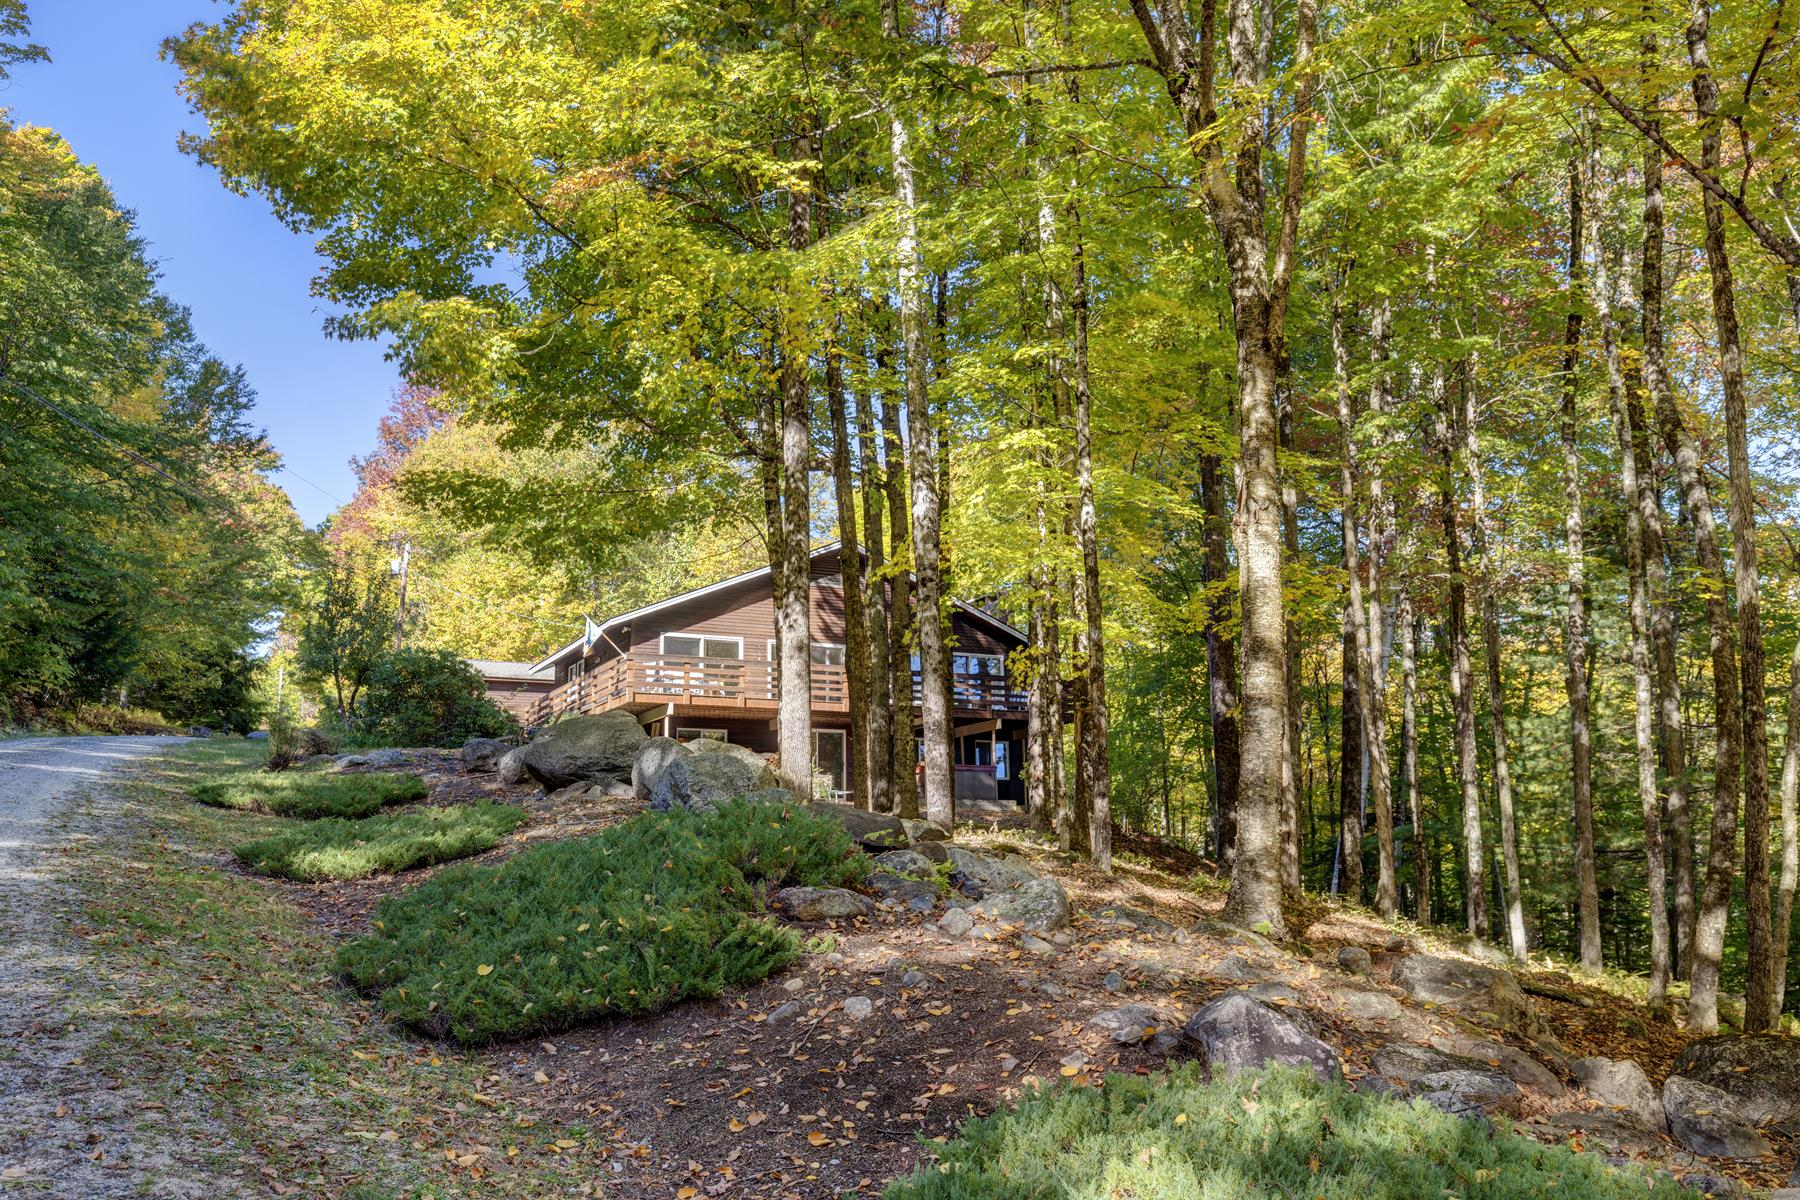 Single Family Home for Sale at 22 Porcupine Ridge, New London New London, New Hampshire, 03257 United States